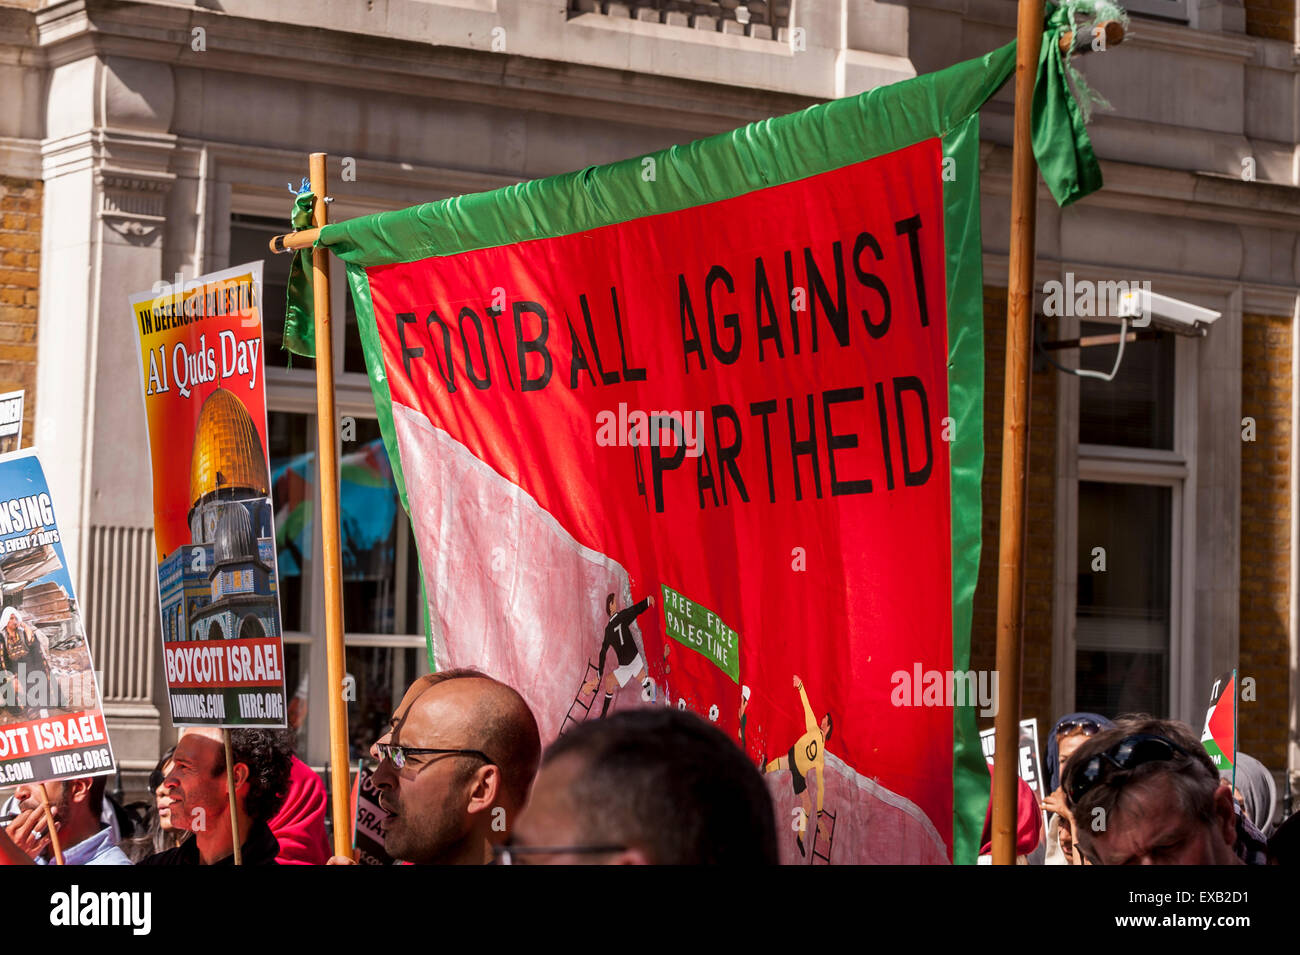 London, UK. 10 July 2015.  Demonstrators gather outside the BBC building near Oxford Circus at the start of the - Stock Image